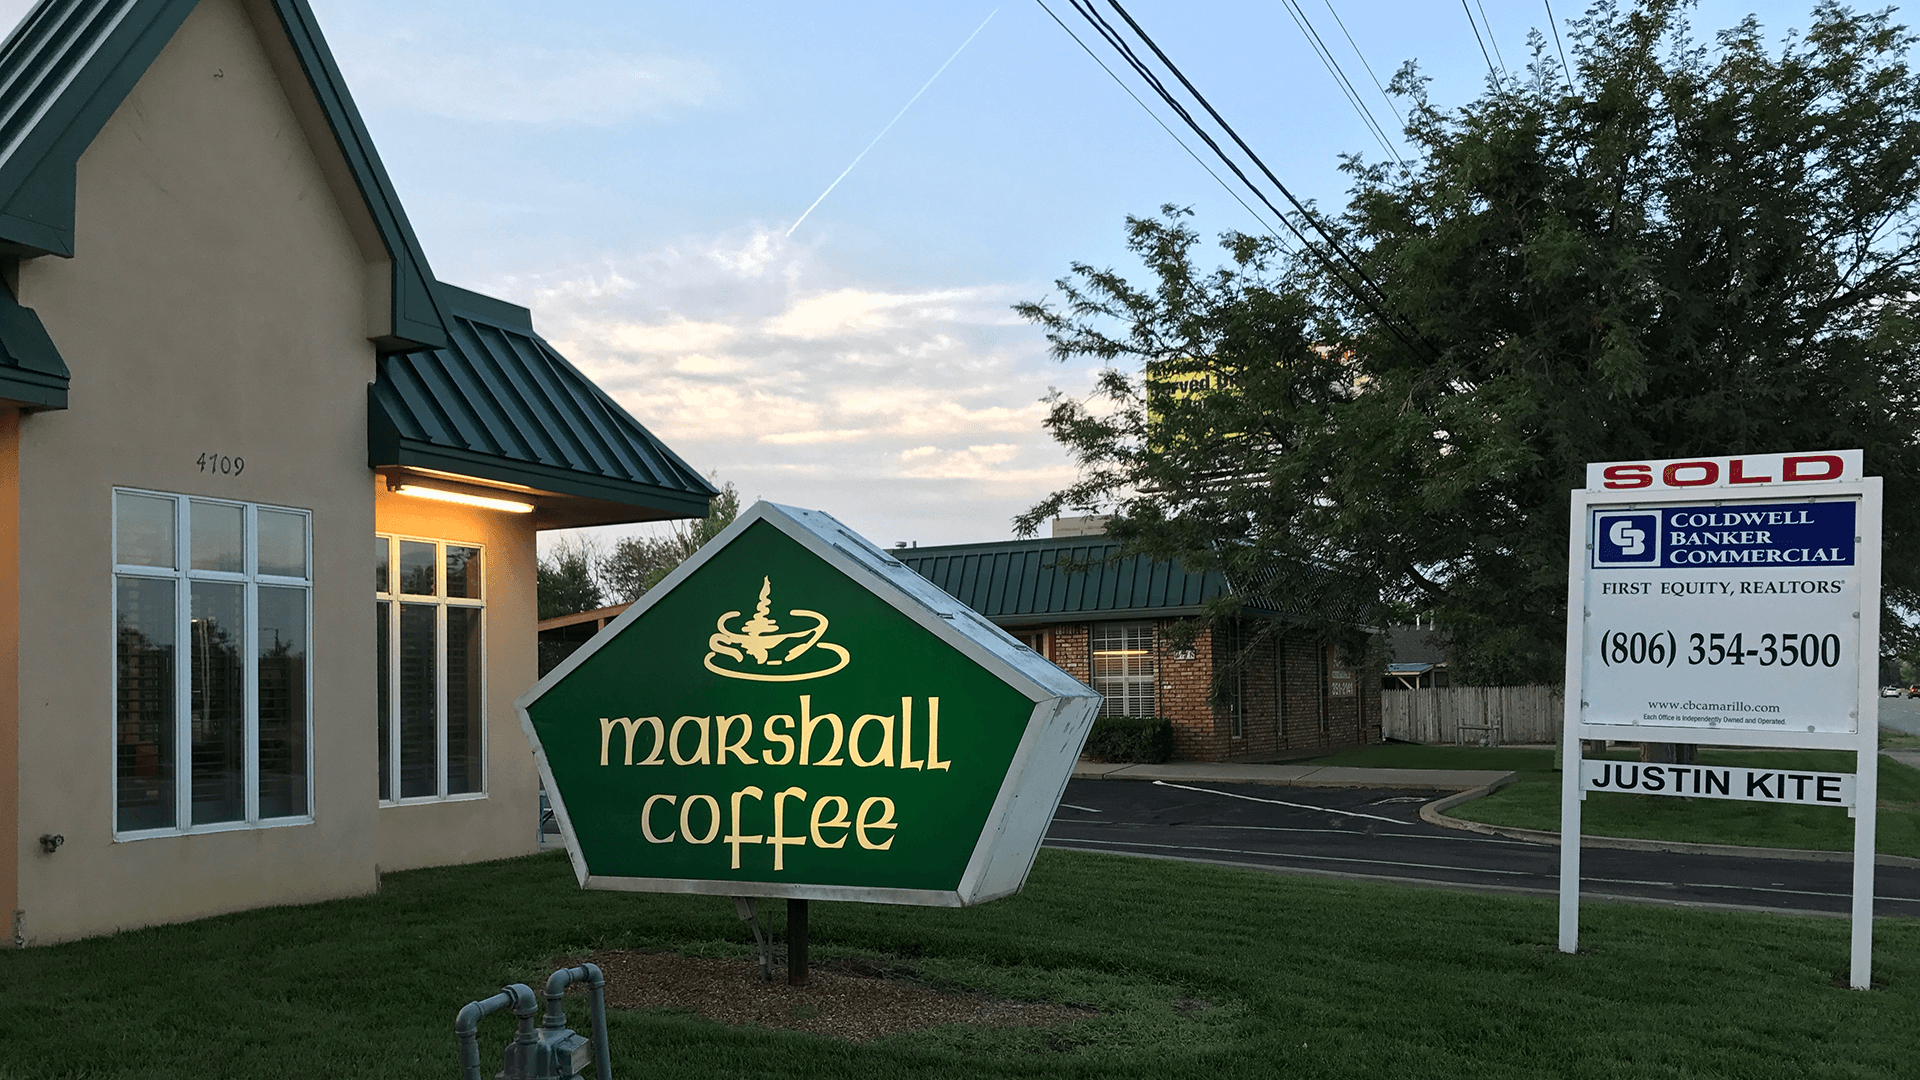 Marshall Coffee Co. makes its exit